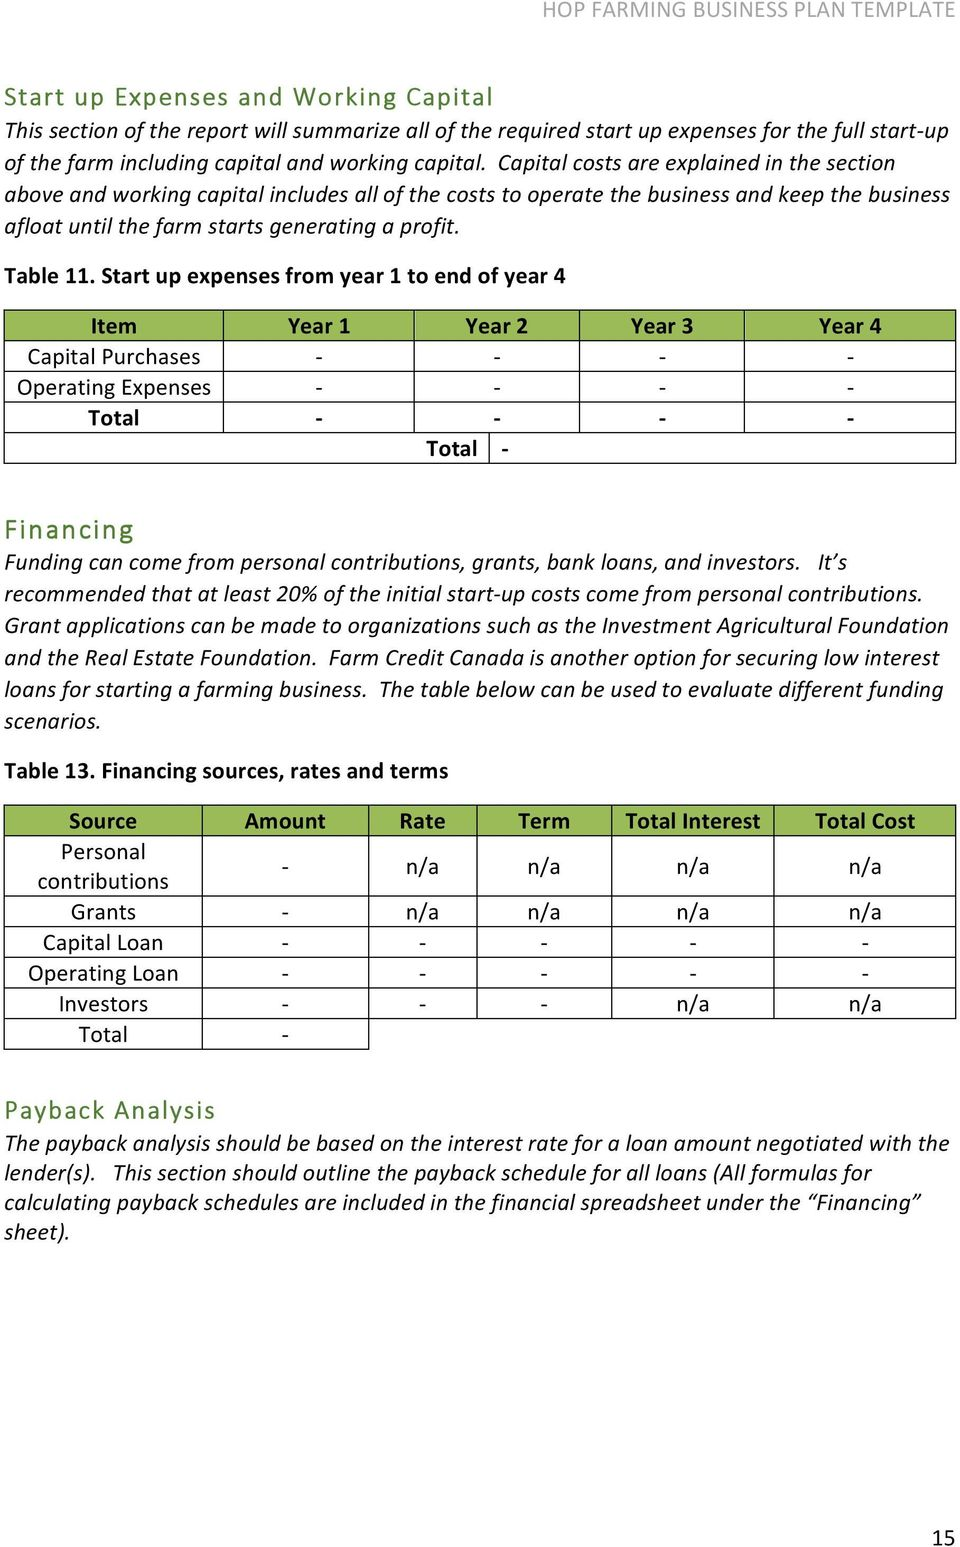 Technical report 2 hop farming business plan template pdf for Farm cash flow template